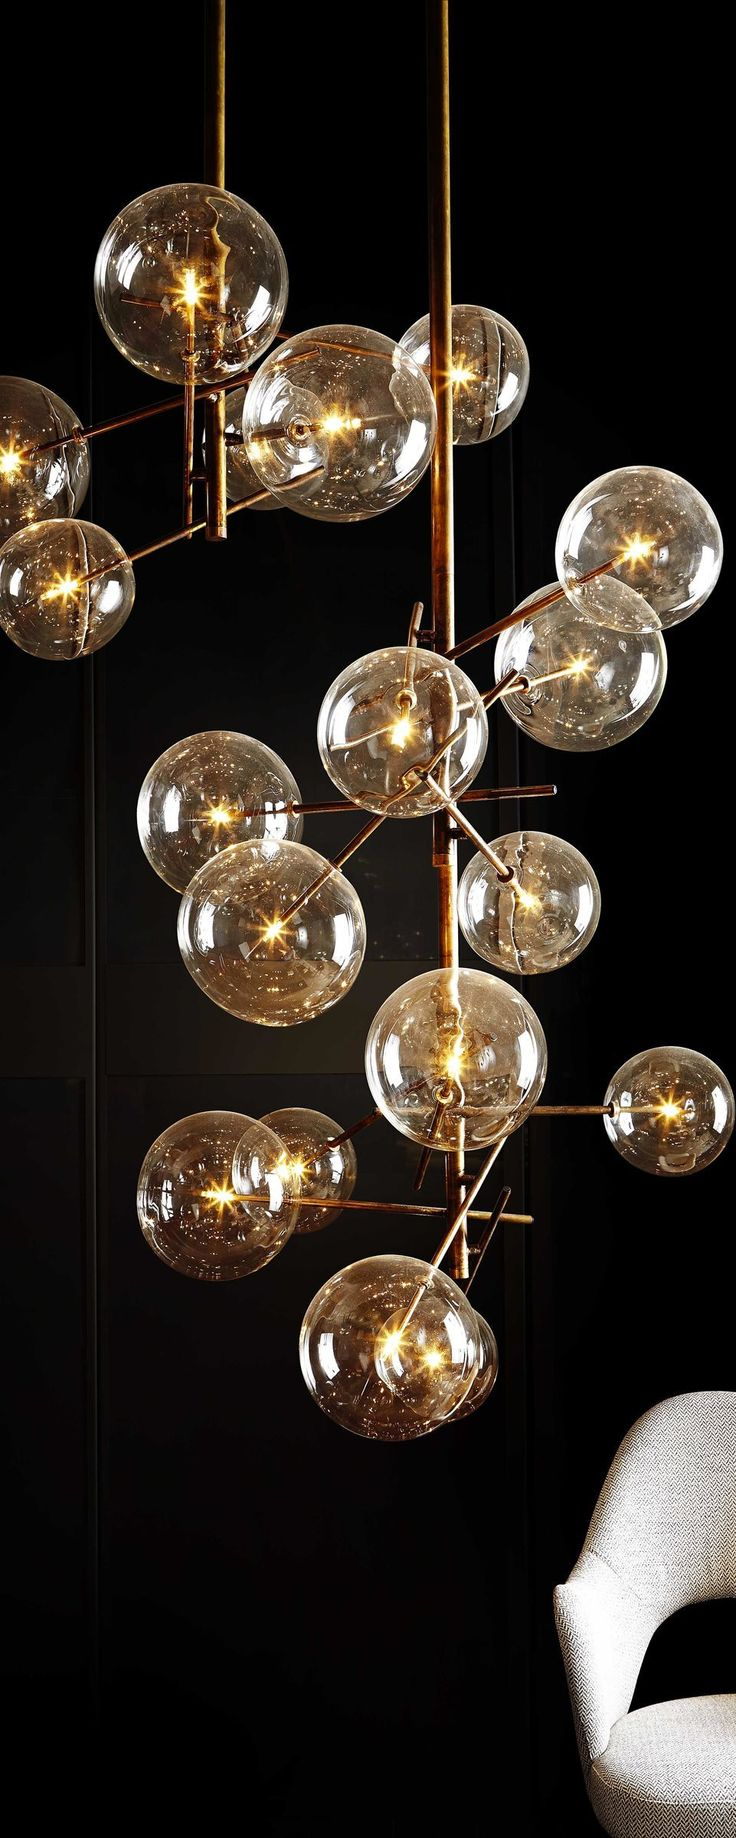 Bolle, design by Massimo Castagna Gallotti Radice 2014 | chandelier